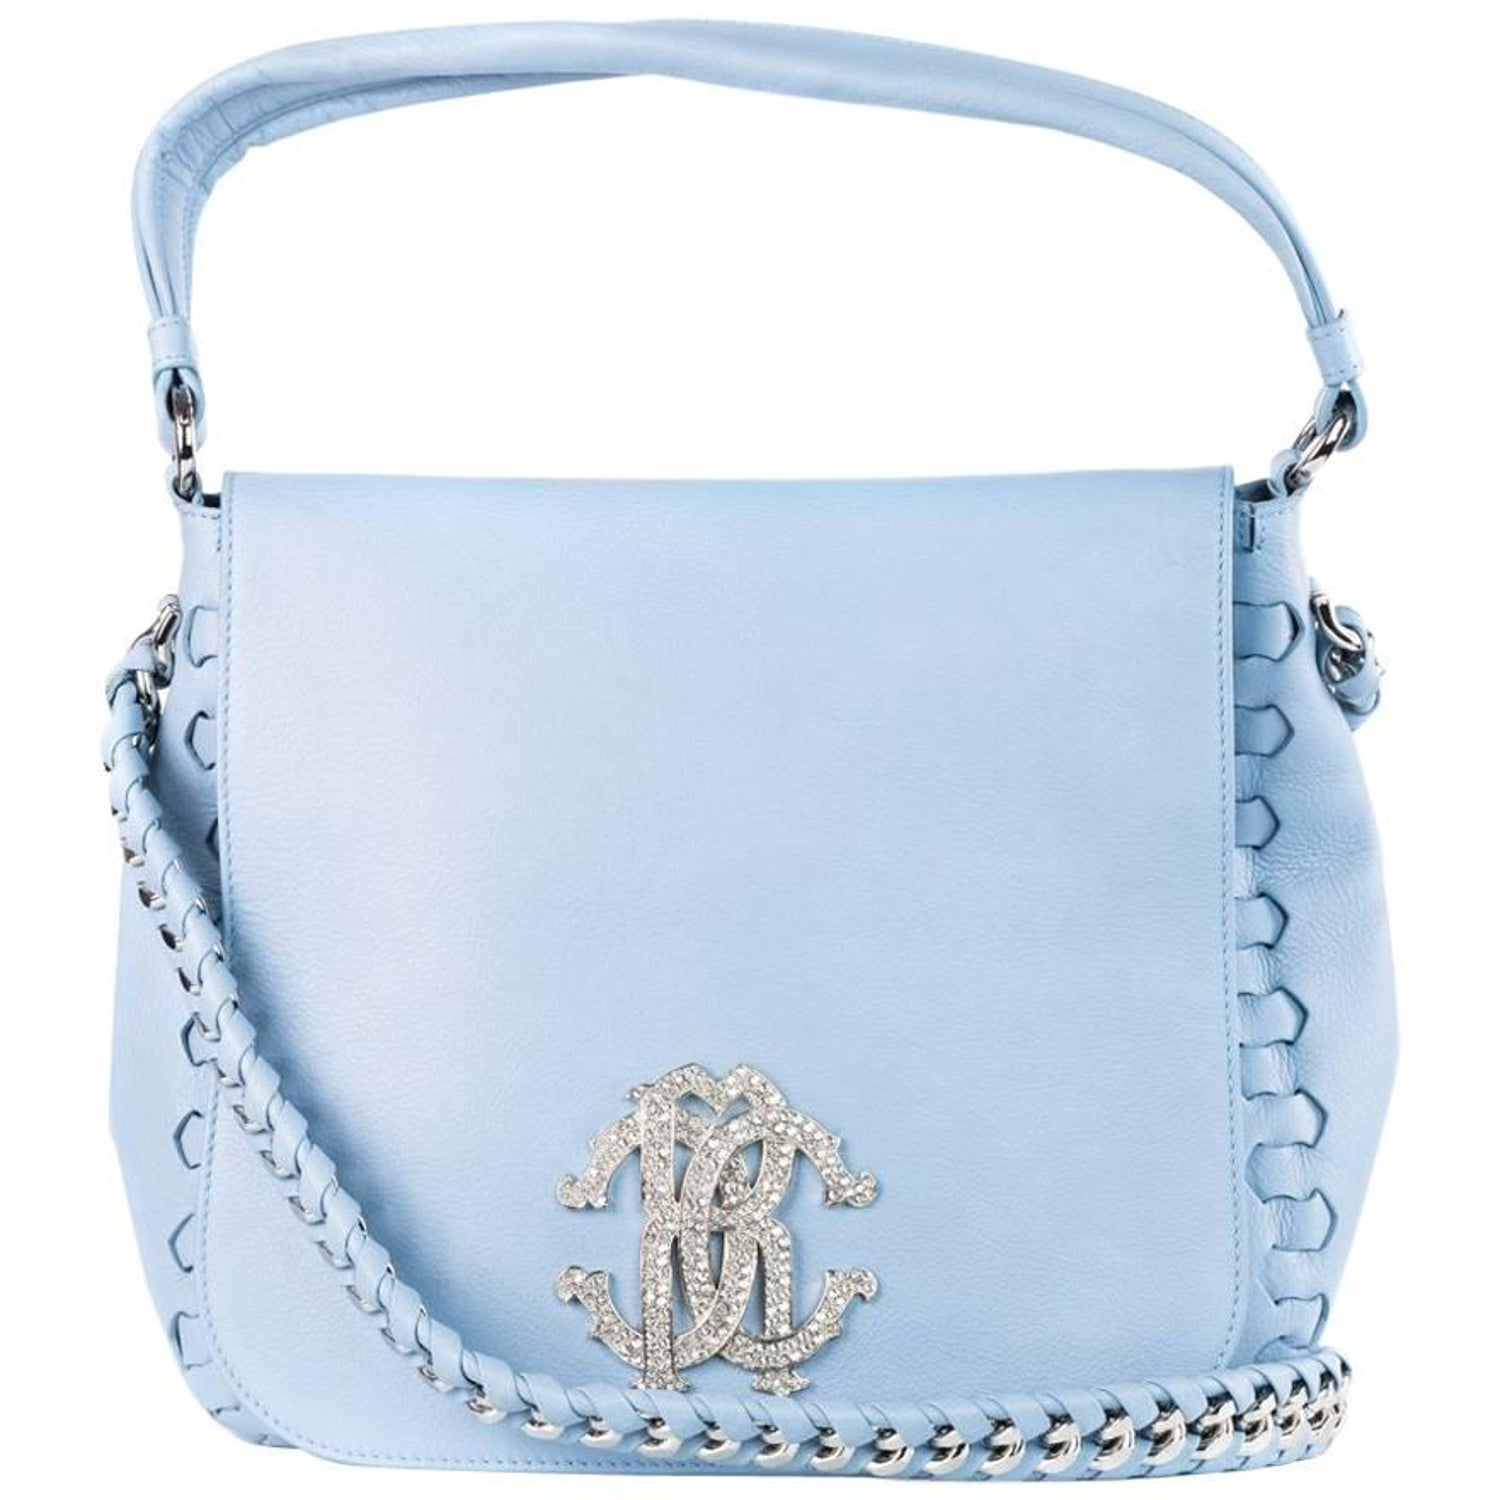 4a9b1dfa55 Roberto Cavalli Women Baby Blue Leather Messenger Flap Shoulder Bag Rtl   3500 For Sale at 1stdibs